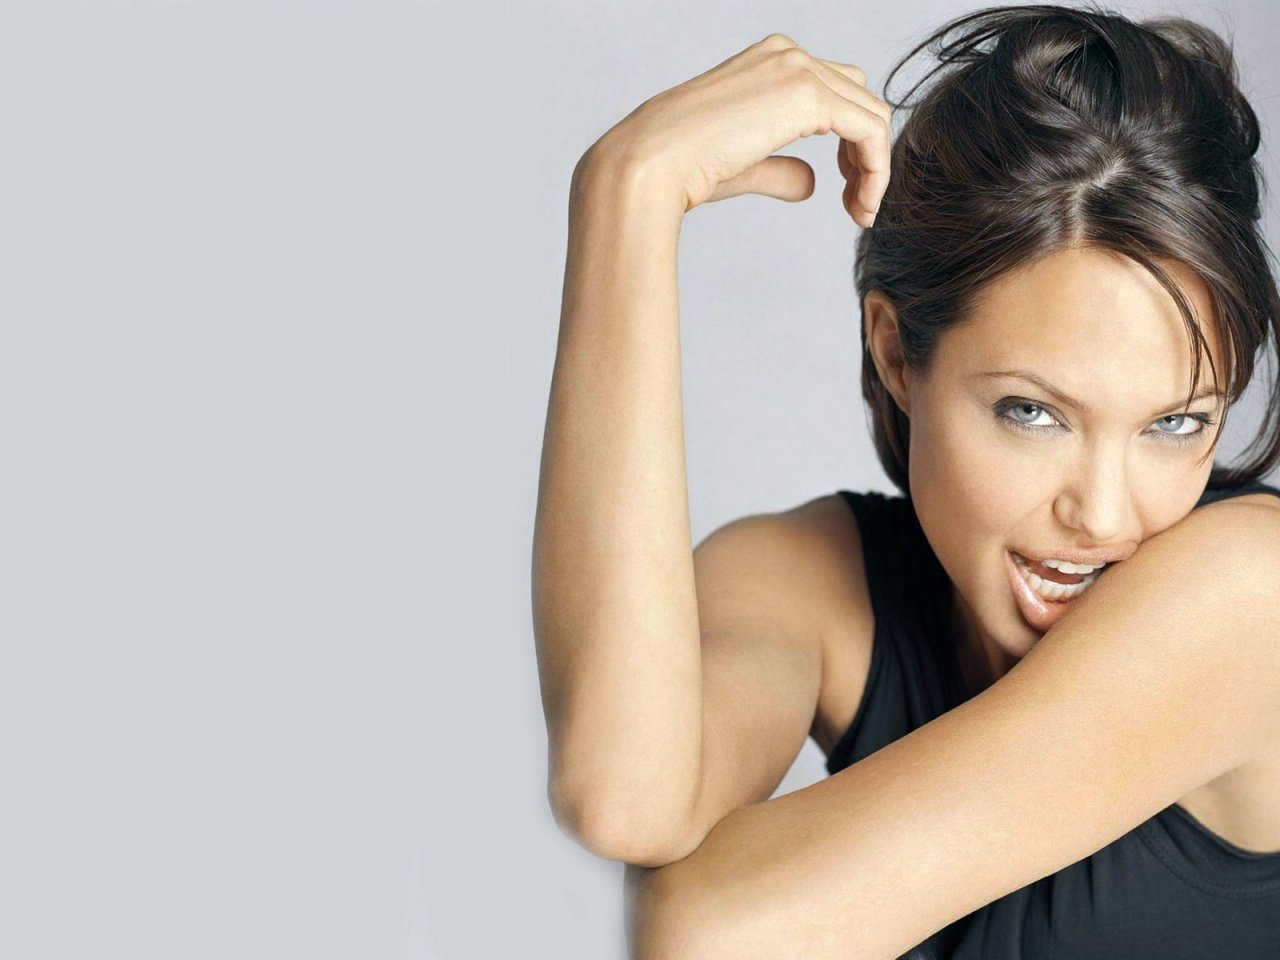 Angelina Jolie Hot And Sexy Pics free download angelina jolie hot boobs visible [1280x960